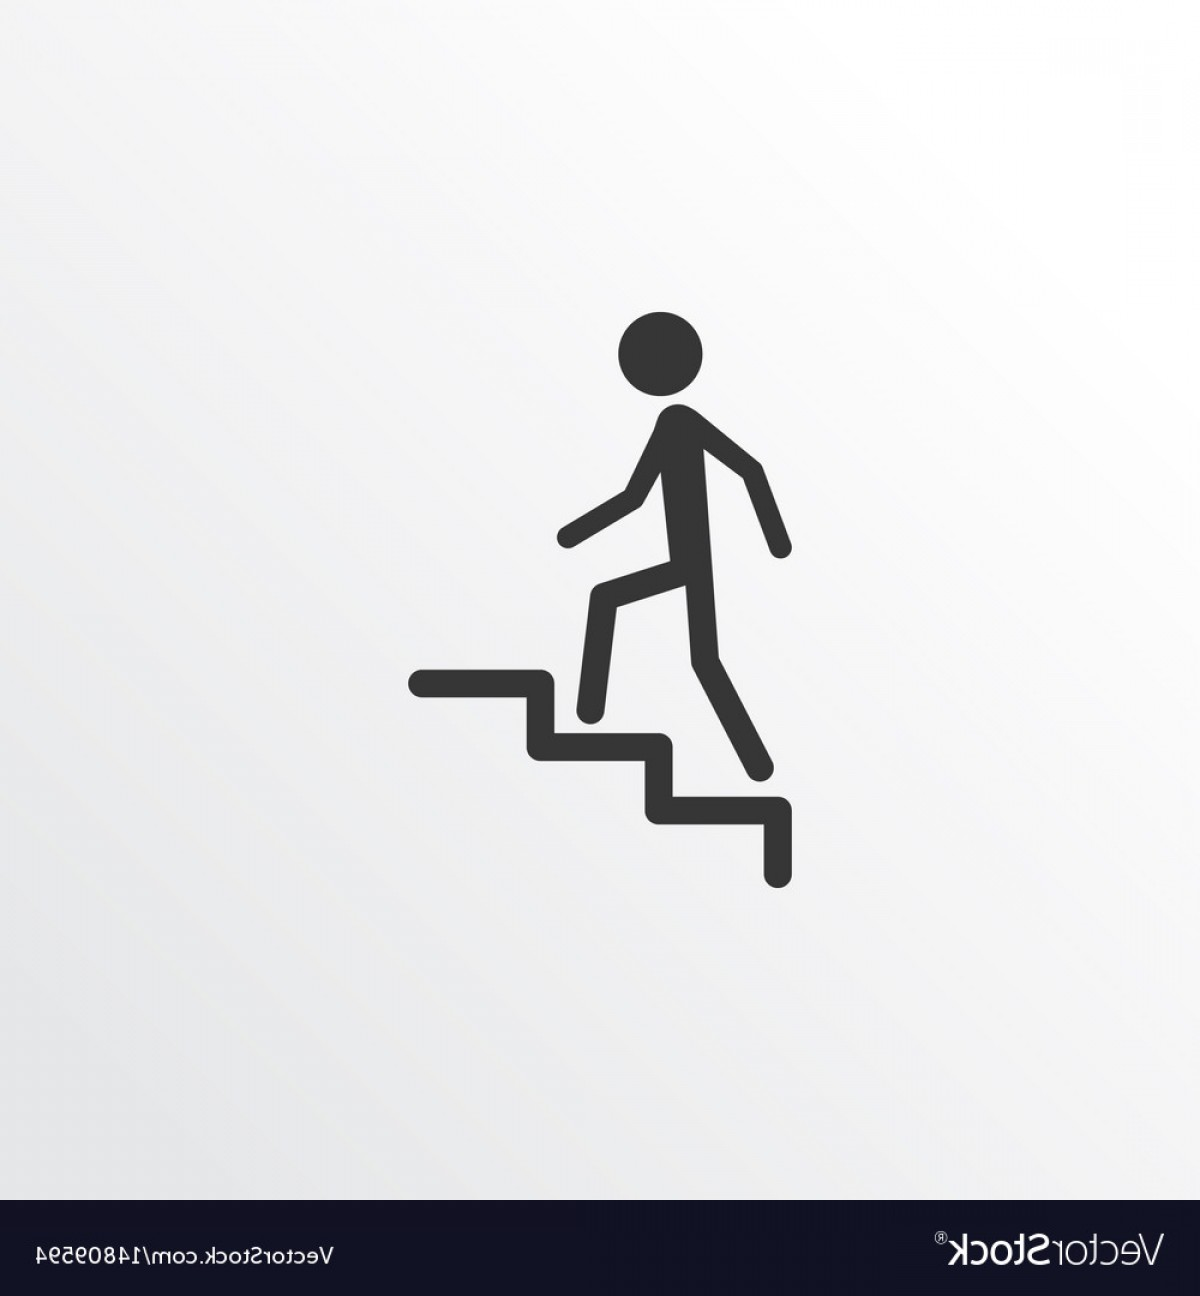 Stair Climb Vector: Climbing Stairs Icon Symbol Premium Quality Vector